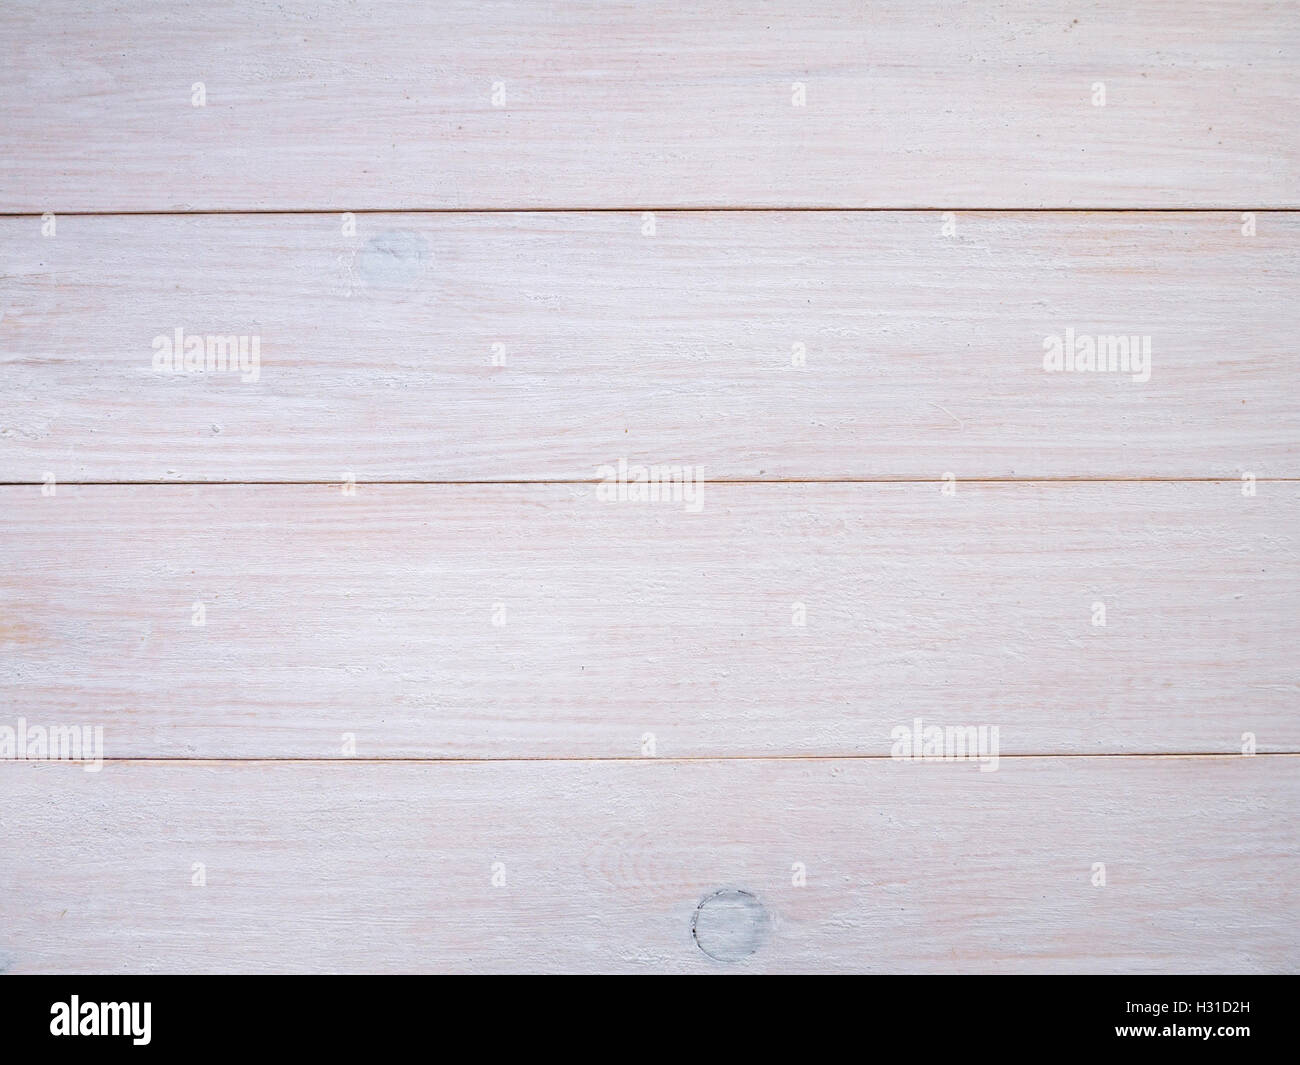 White wooden painted planks background - Stock Image